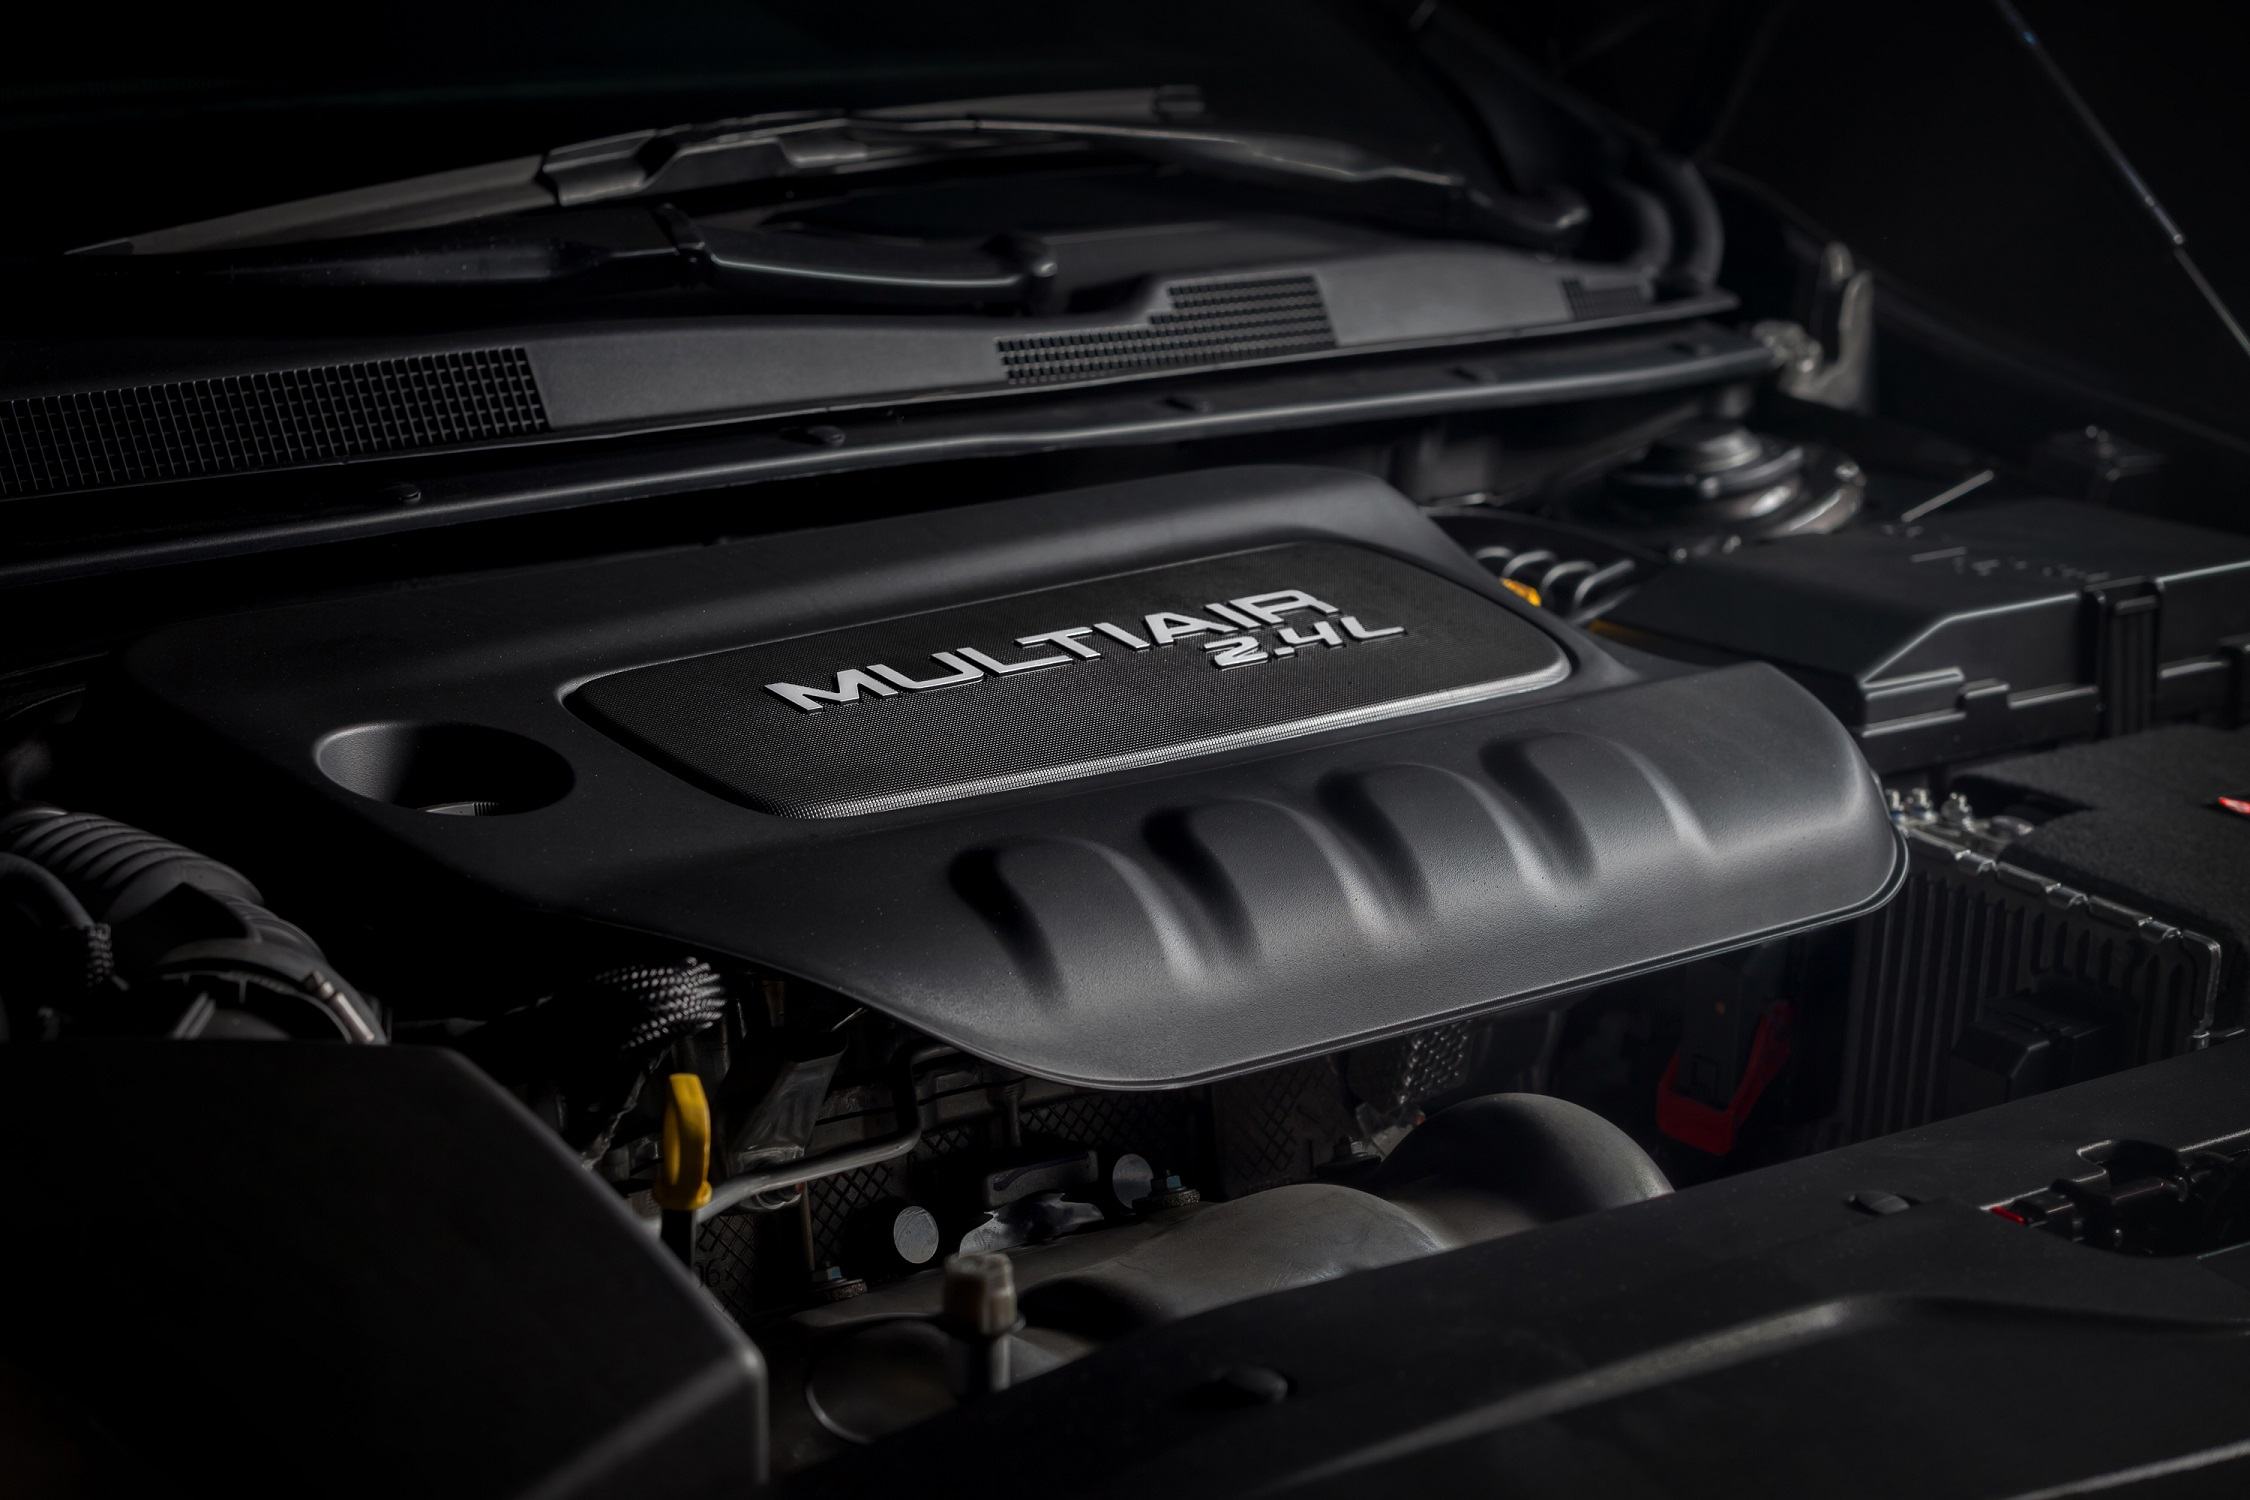 2015 Chrysler 200 2.4-liter MultiAir2 Tigershark I-4 engine